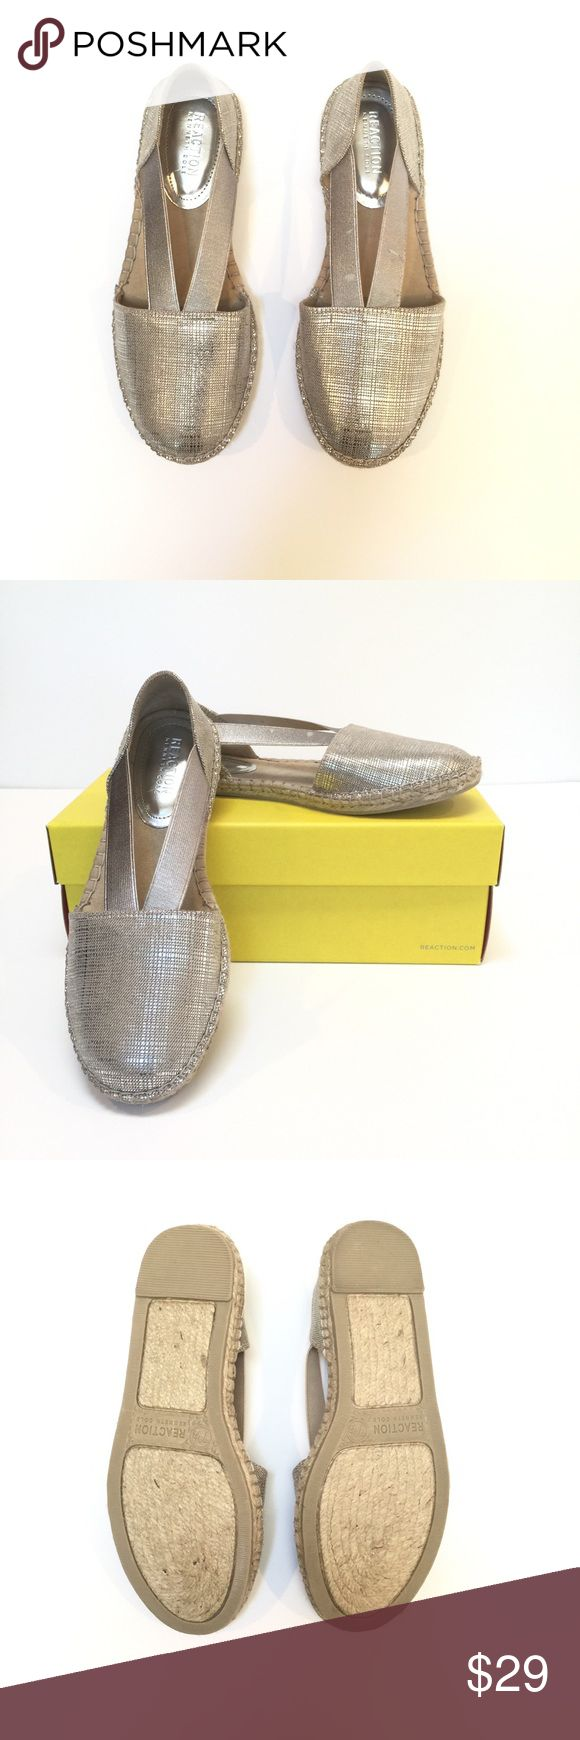 Kenneth Cole silver espadrille sandals. New, 7.5 Kenneth Cole Reaction silver espadrille sandals. New in box. Size 7.5. Textile material. Summer is here! Kenneth Cole Reaction Shoes Sandals